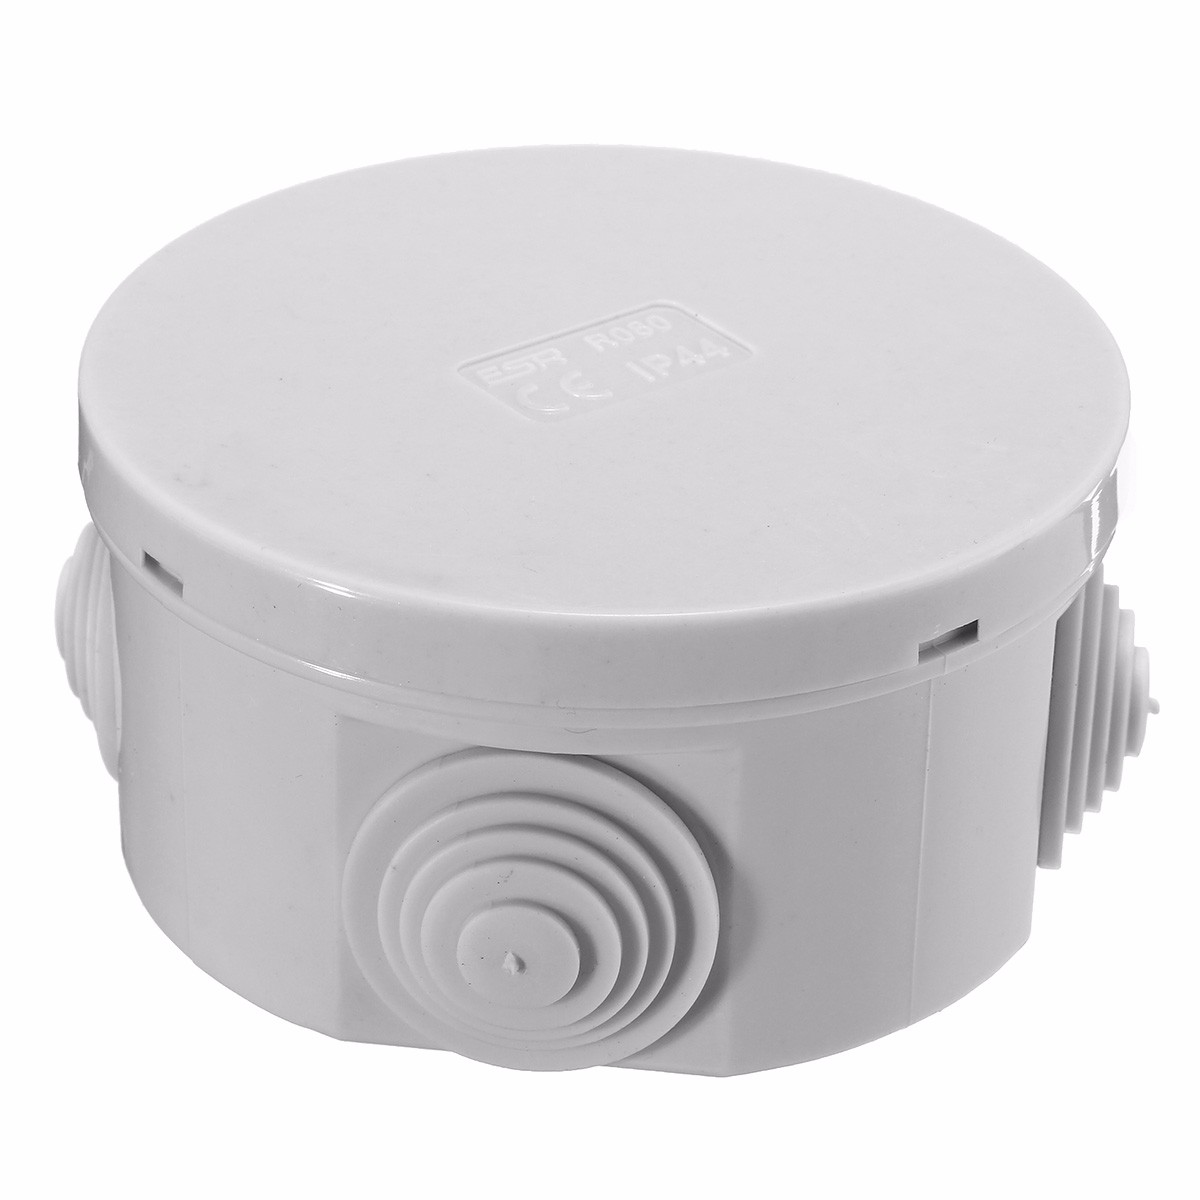 New Arrival Waterproof up to IP44 80 x 40mm  junction box CONTENITORE Raw materials With 4 x Rubber grommet ABS Material Grey